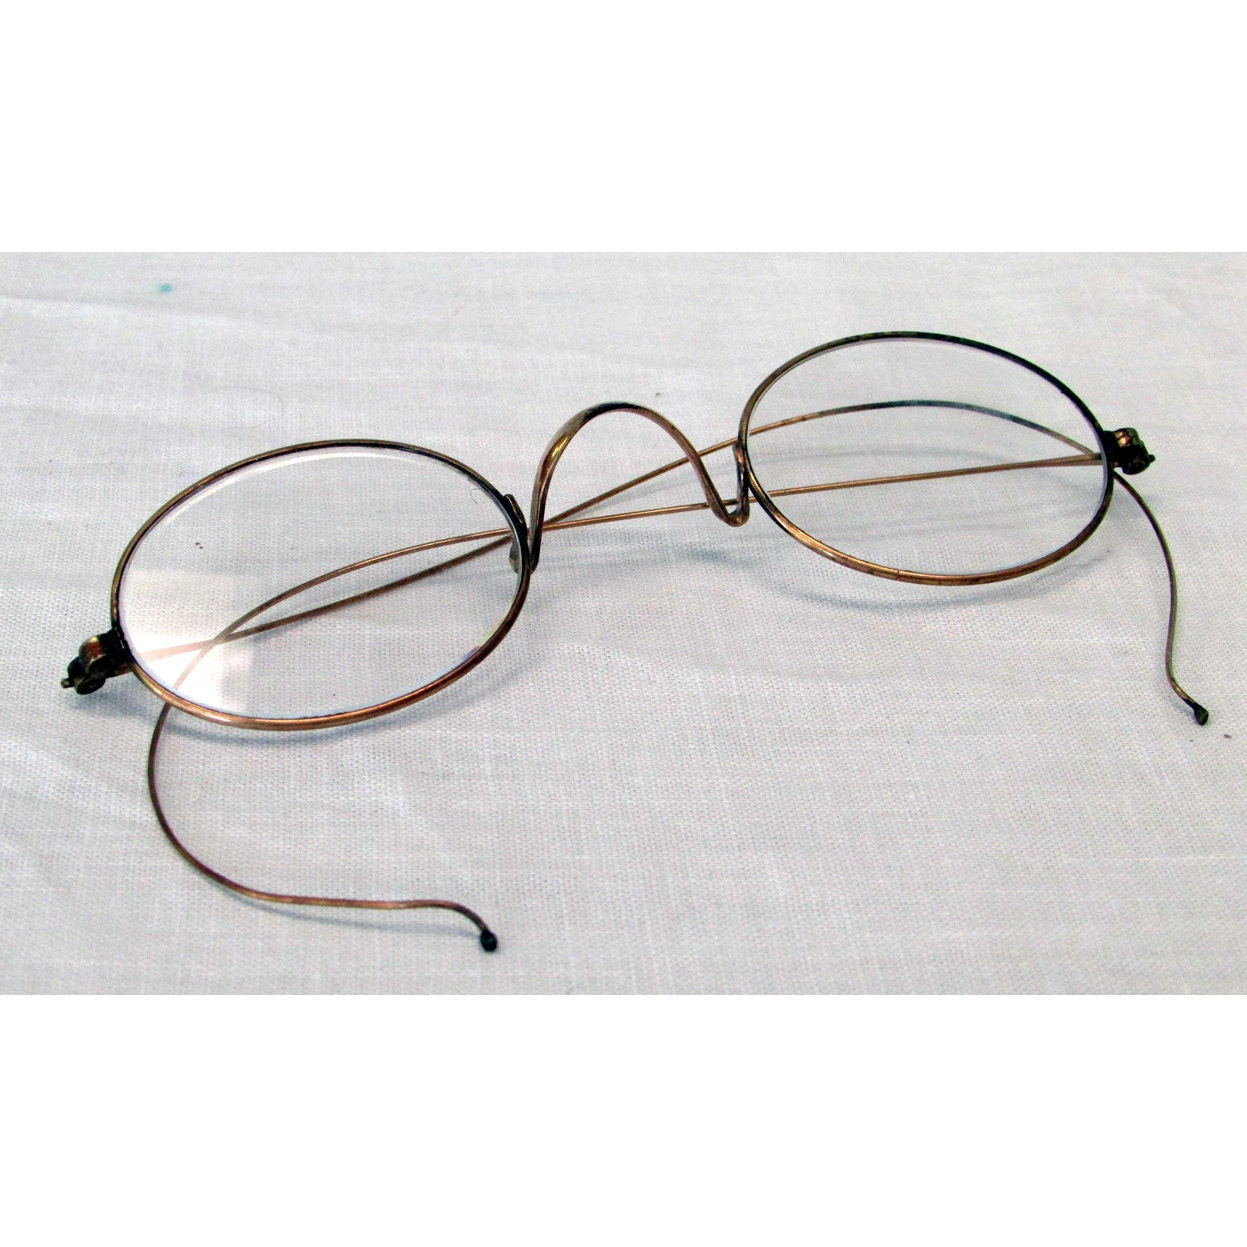 Glasses Frames Saddle Bridge : Civil War Reenactor Oval Wire Rim Eyeglasses Saddle Bridge